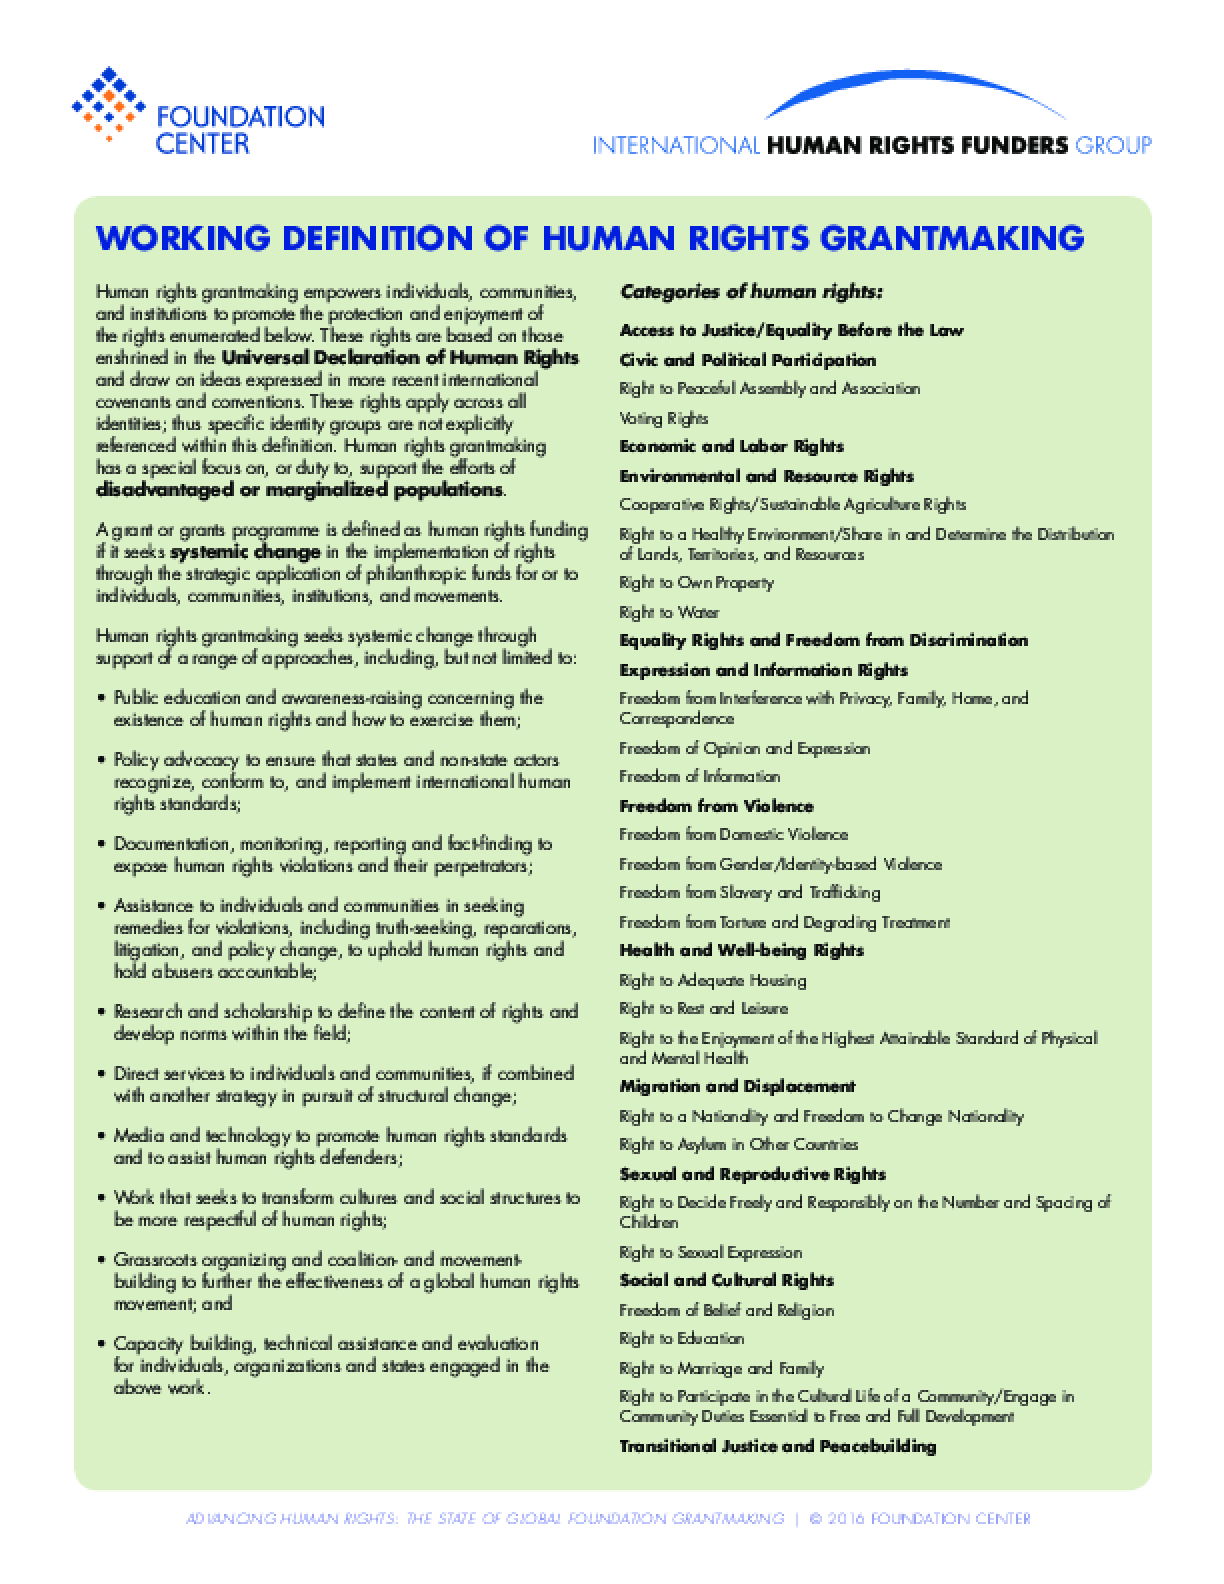 Advancing Human Rights: The State of Global Foundation Grantmaking - Working Definition of Human Rights Grantmaking